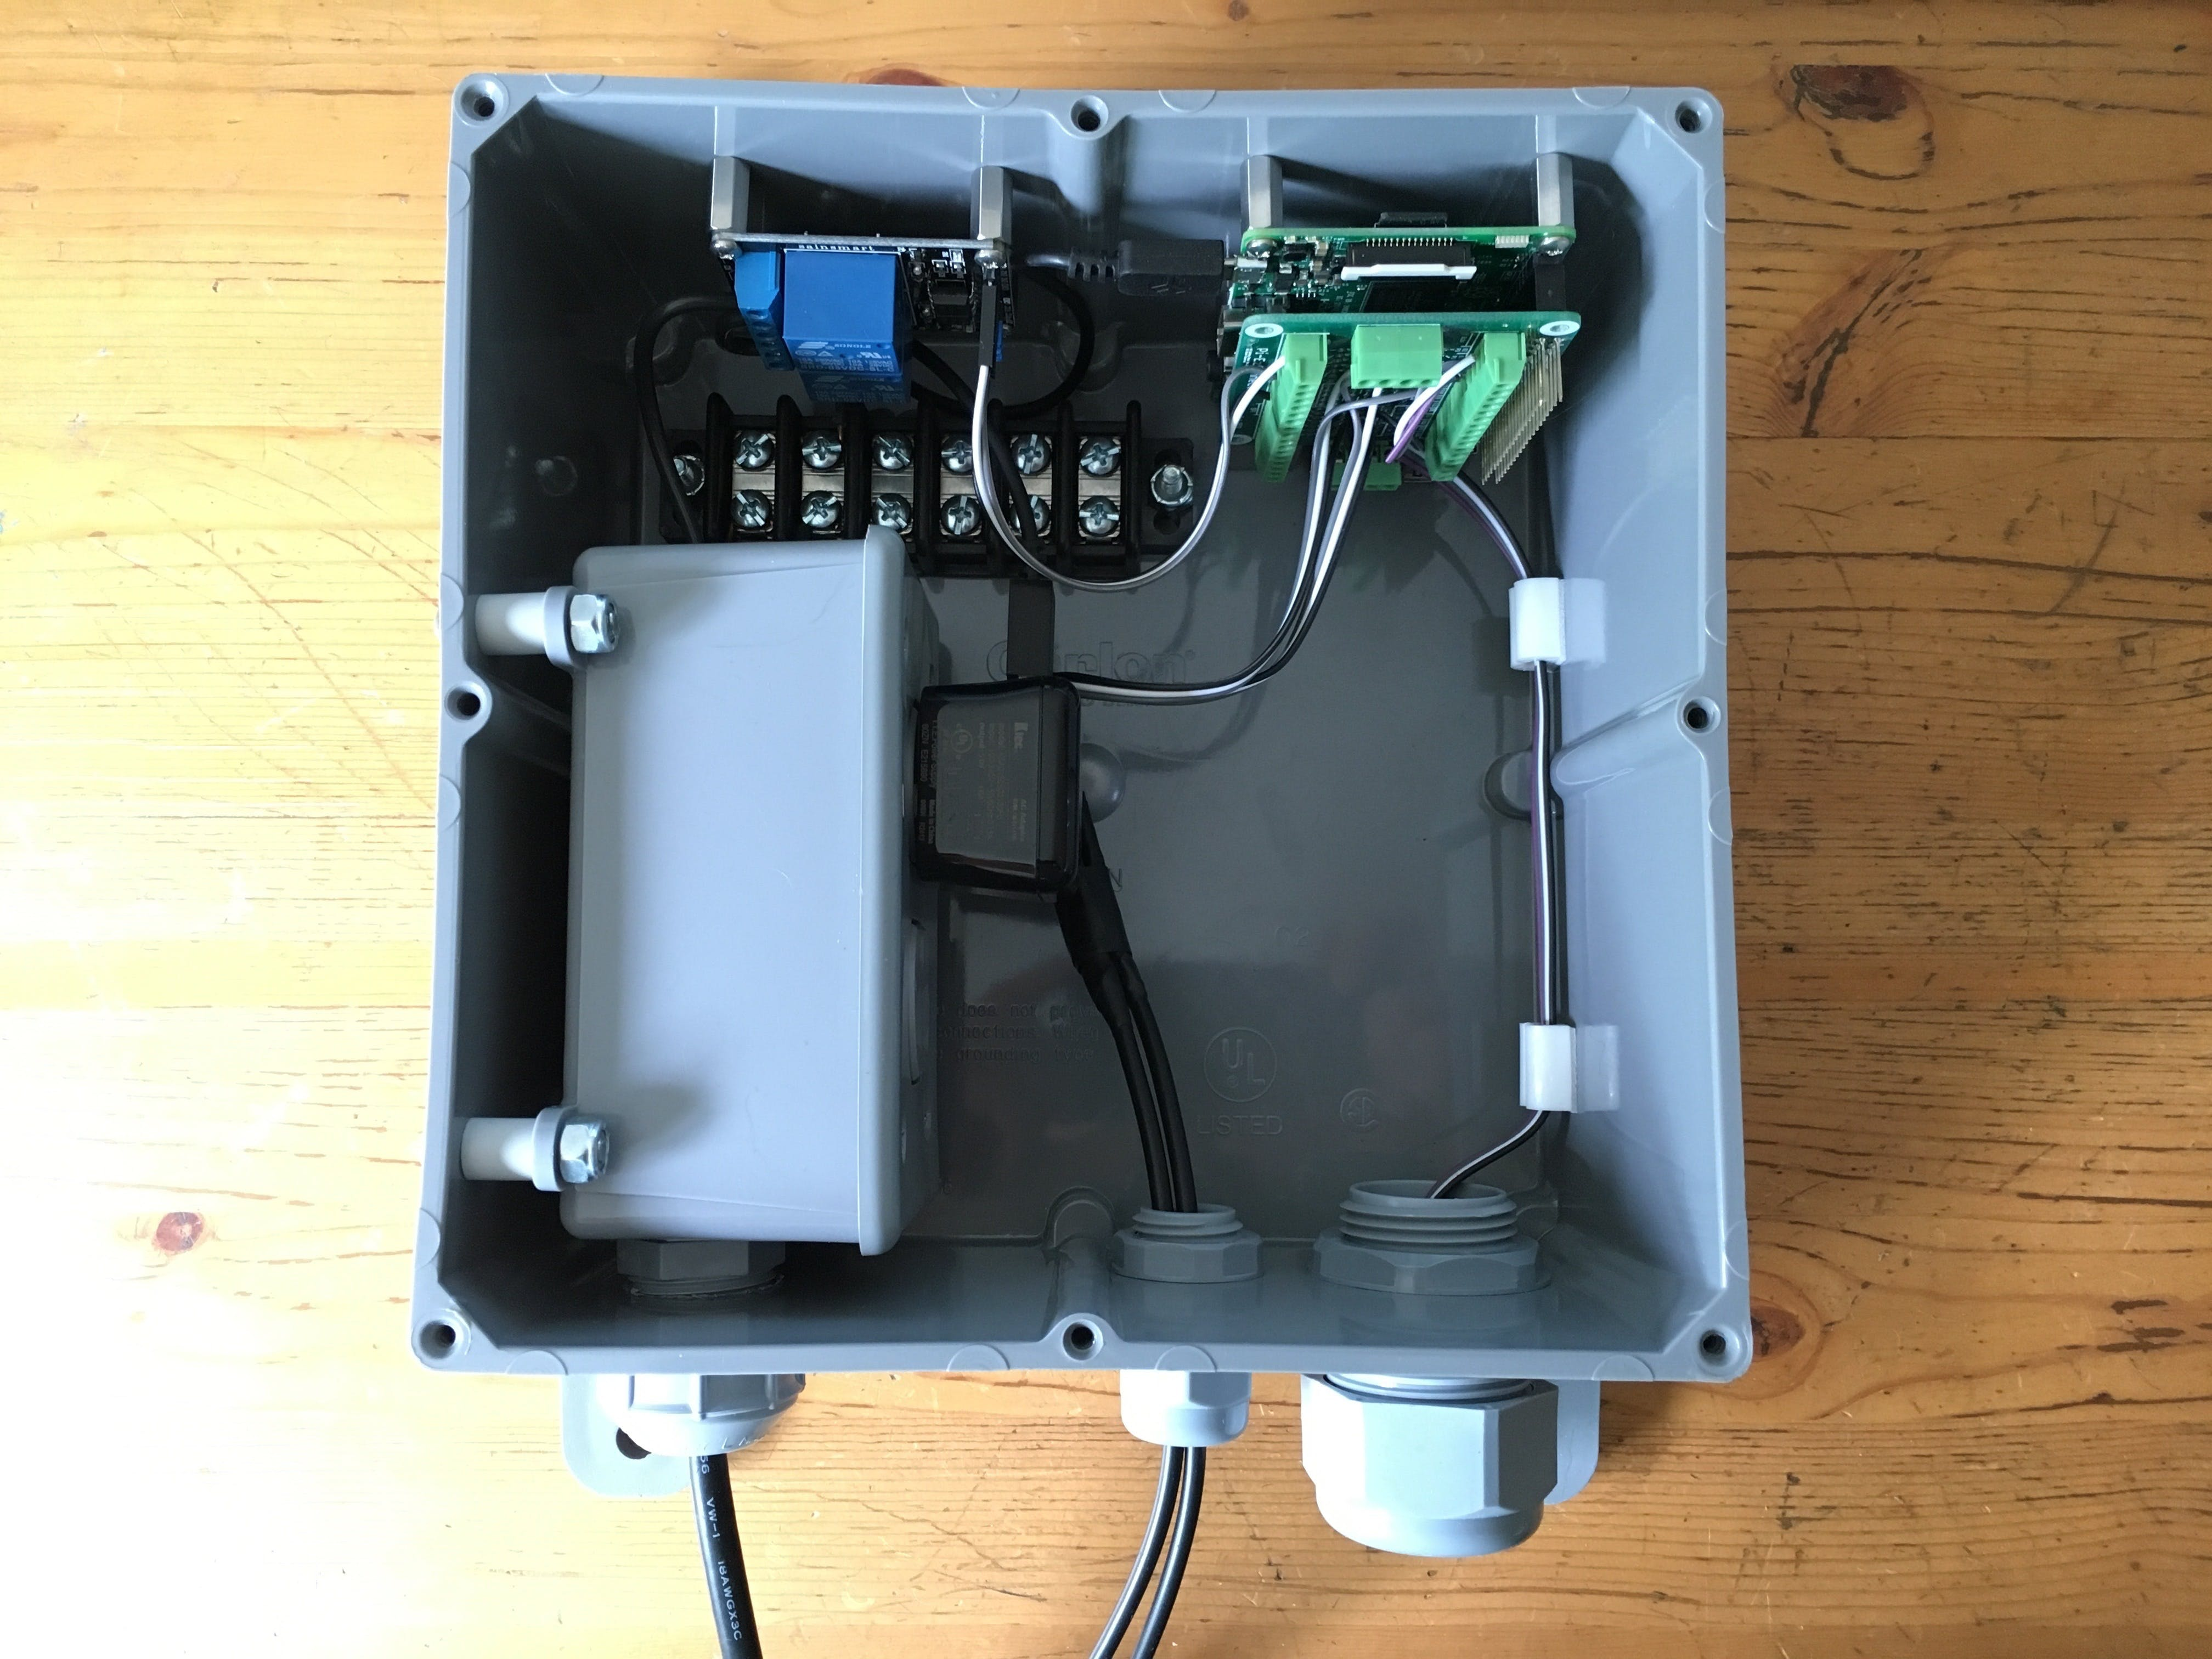 Early interior build of control box